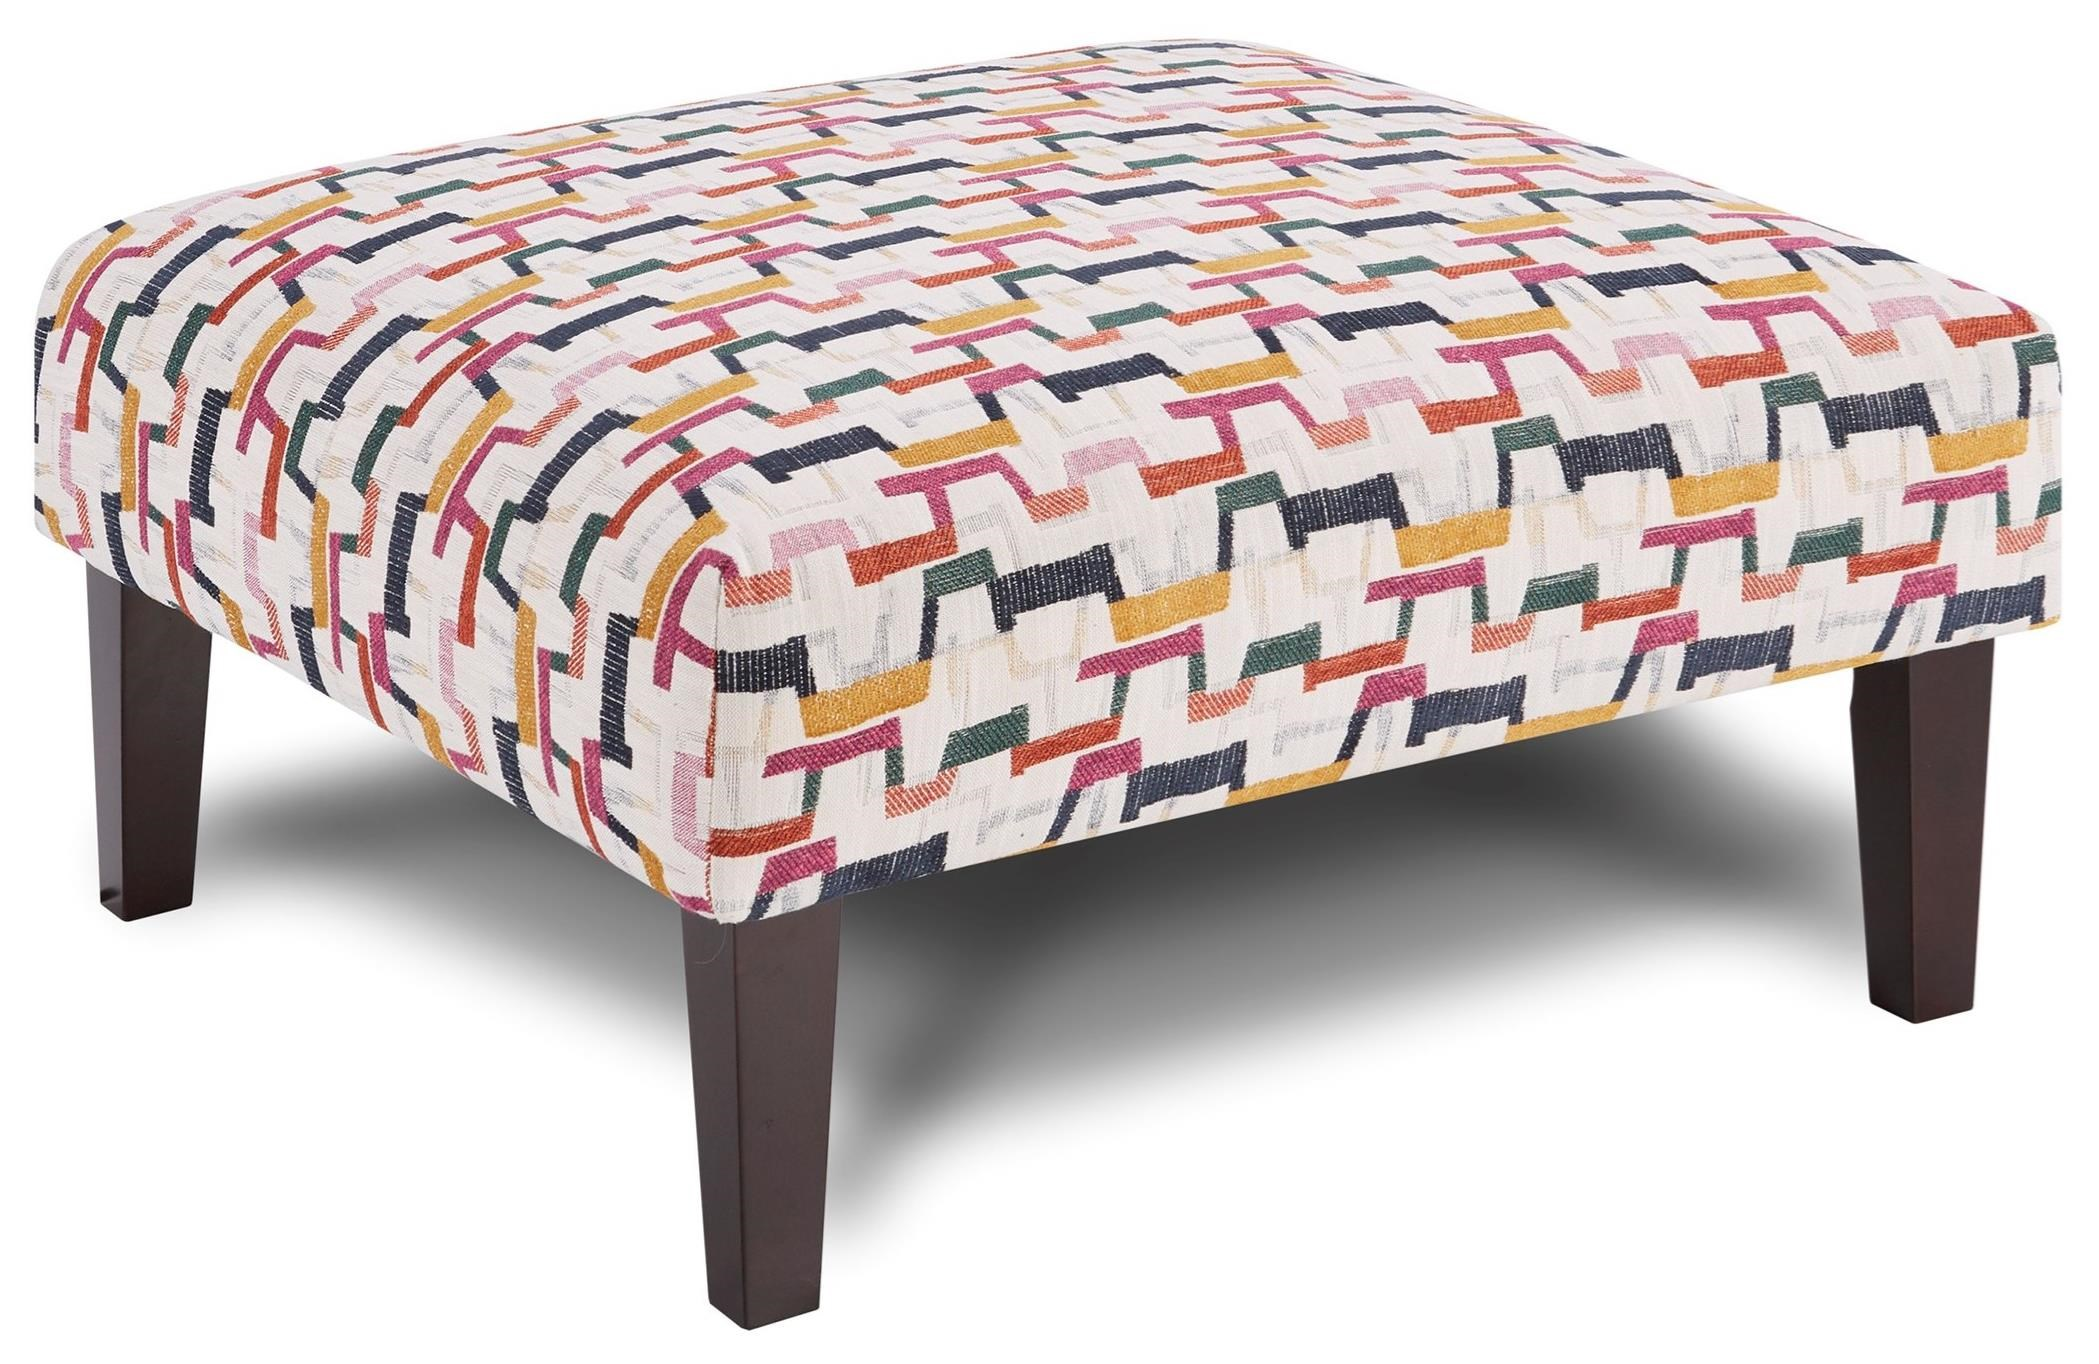 159 Cocktail Ottoman by Fusion Furniture at Wilcox Furniture